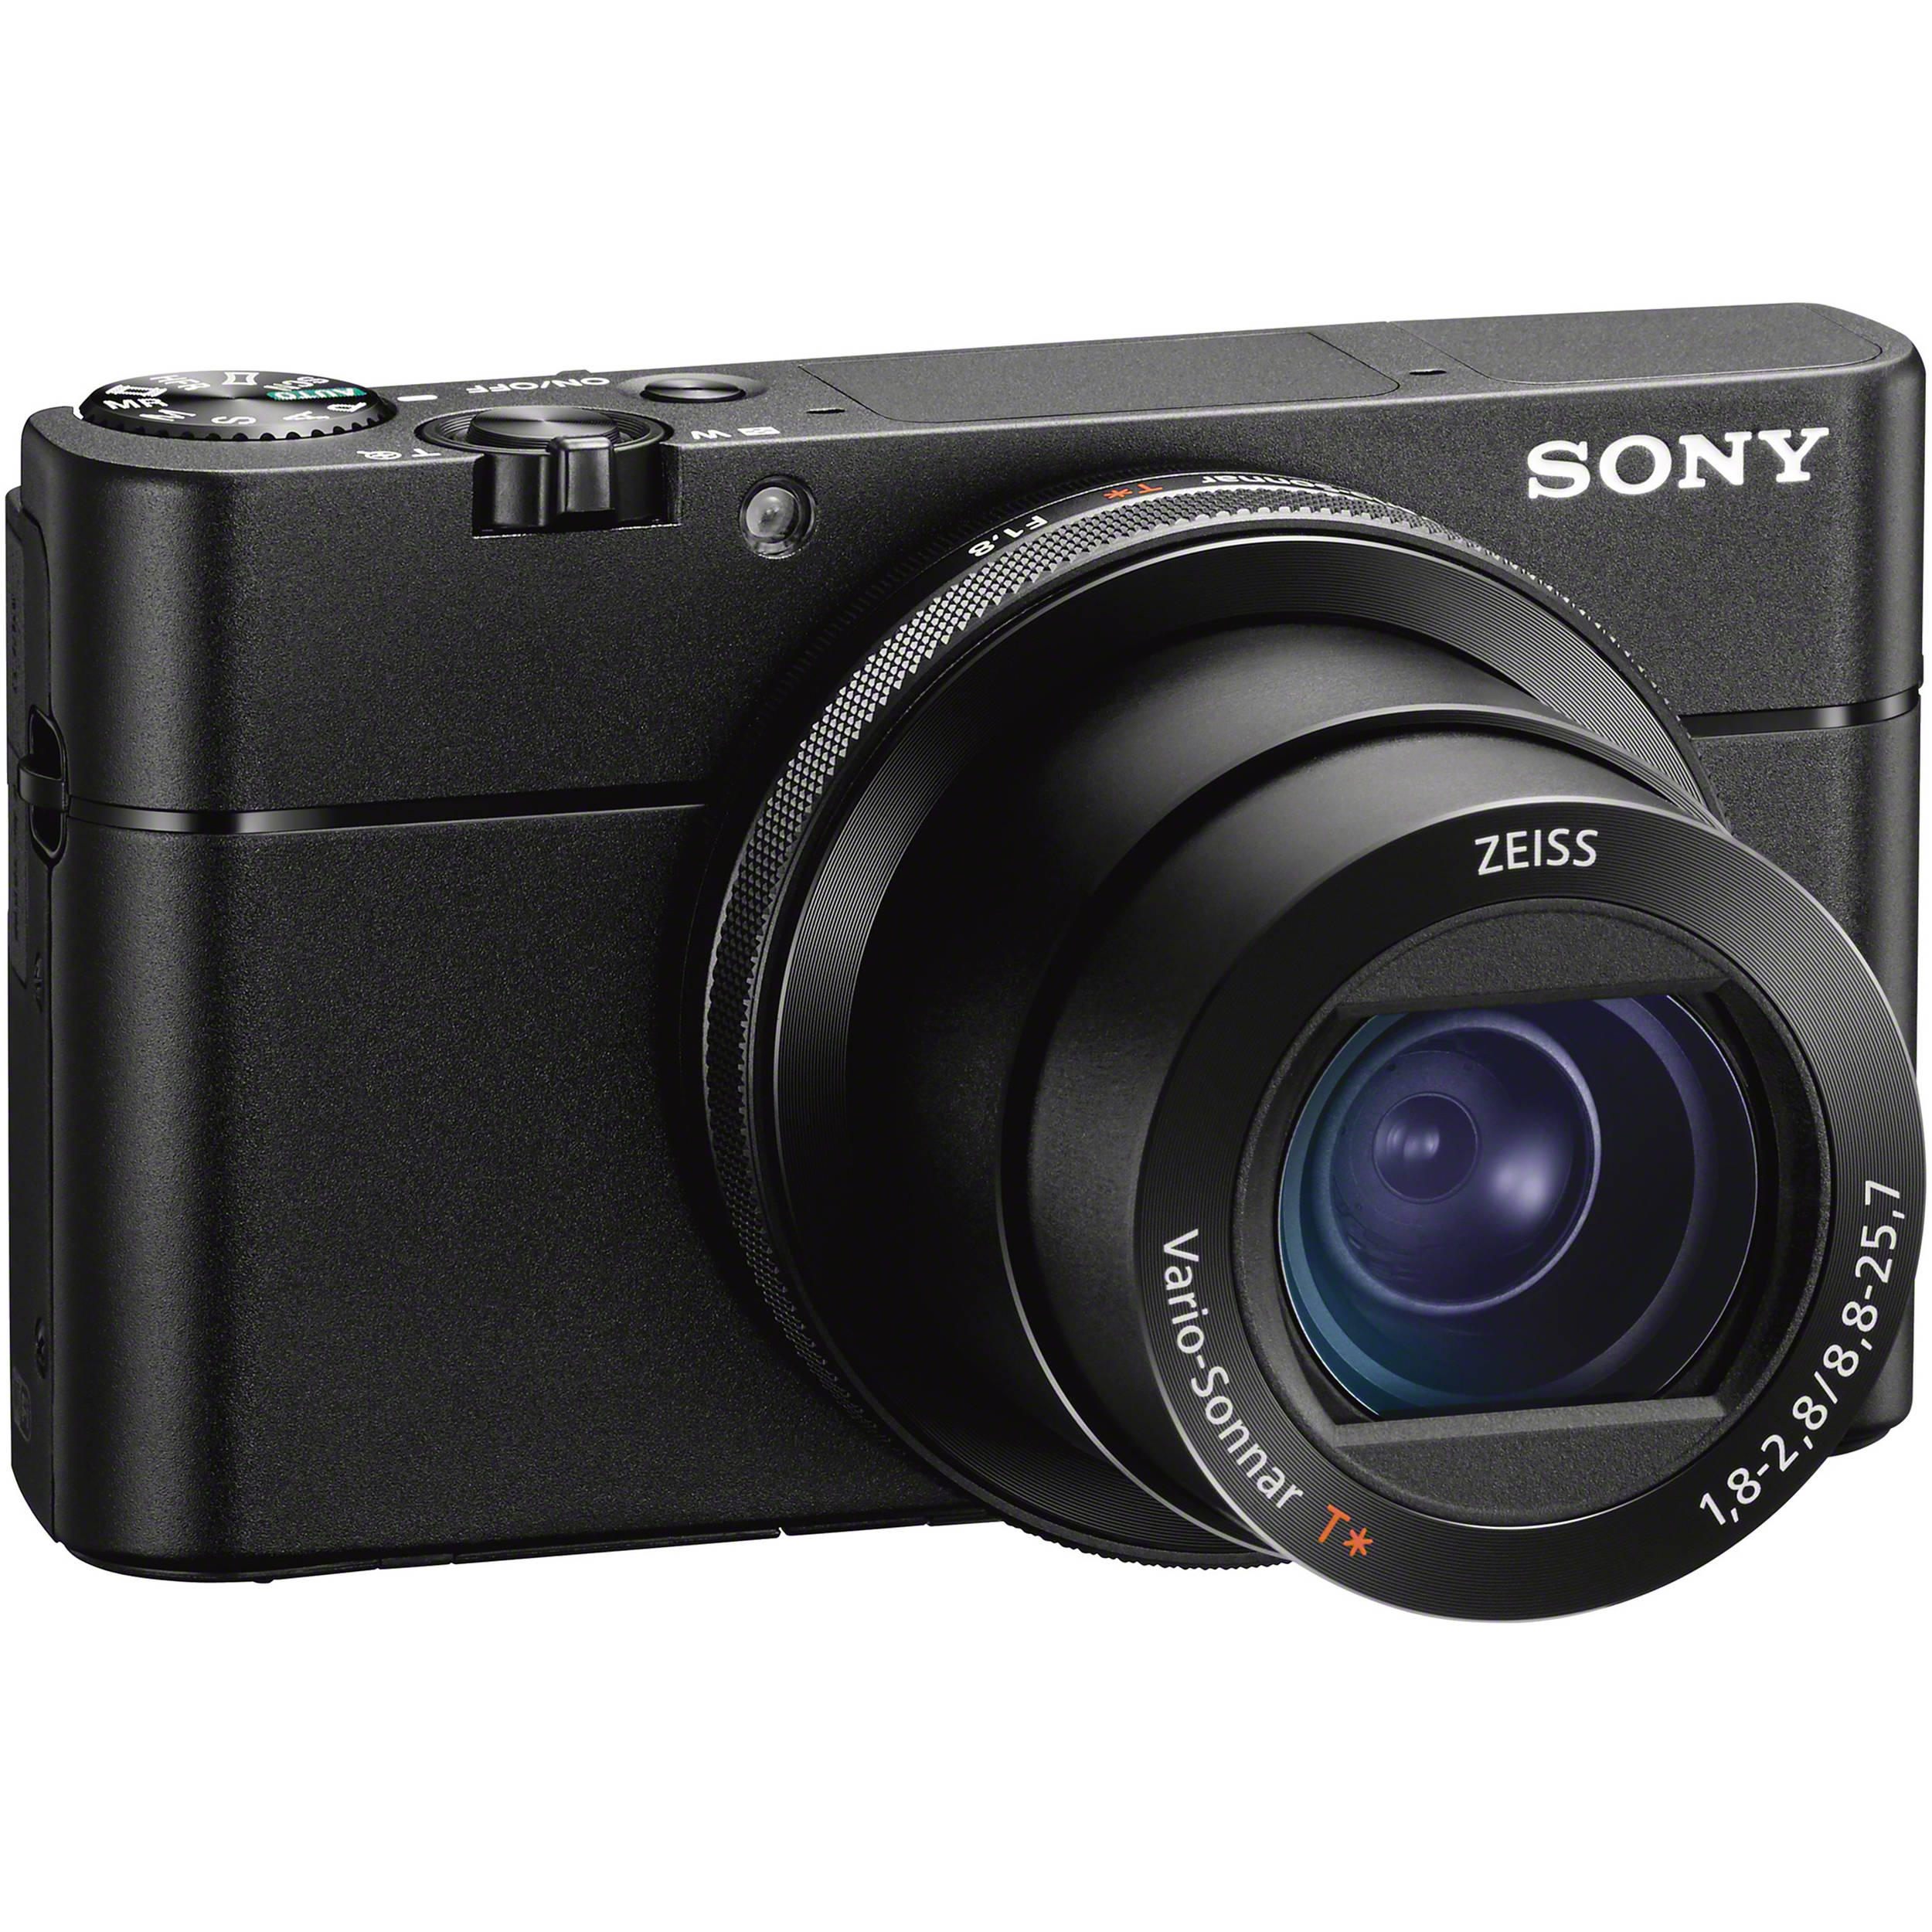 SONY DSC-RX100 CAMERA DRIVERS WINDOWS XP